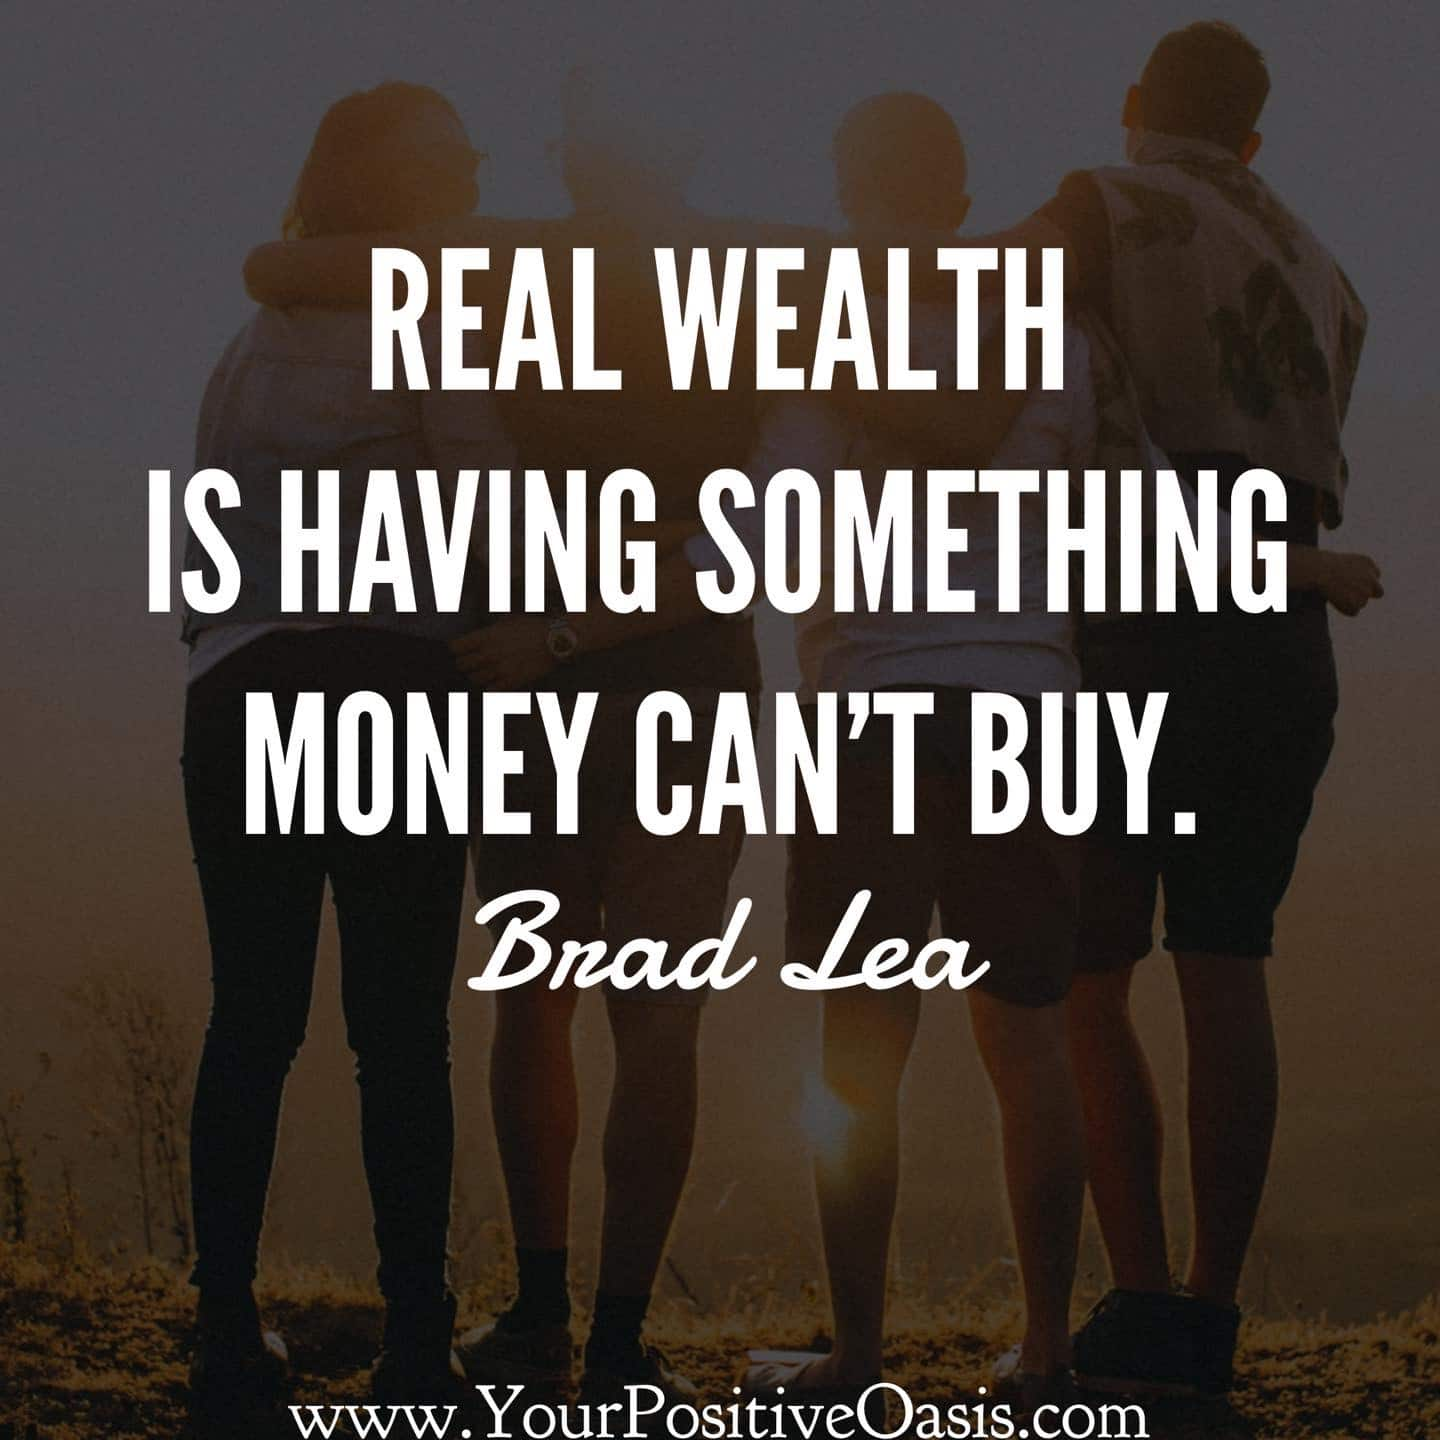 Inspirational Brad Lea Quotes